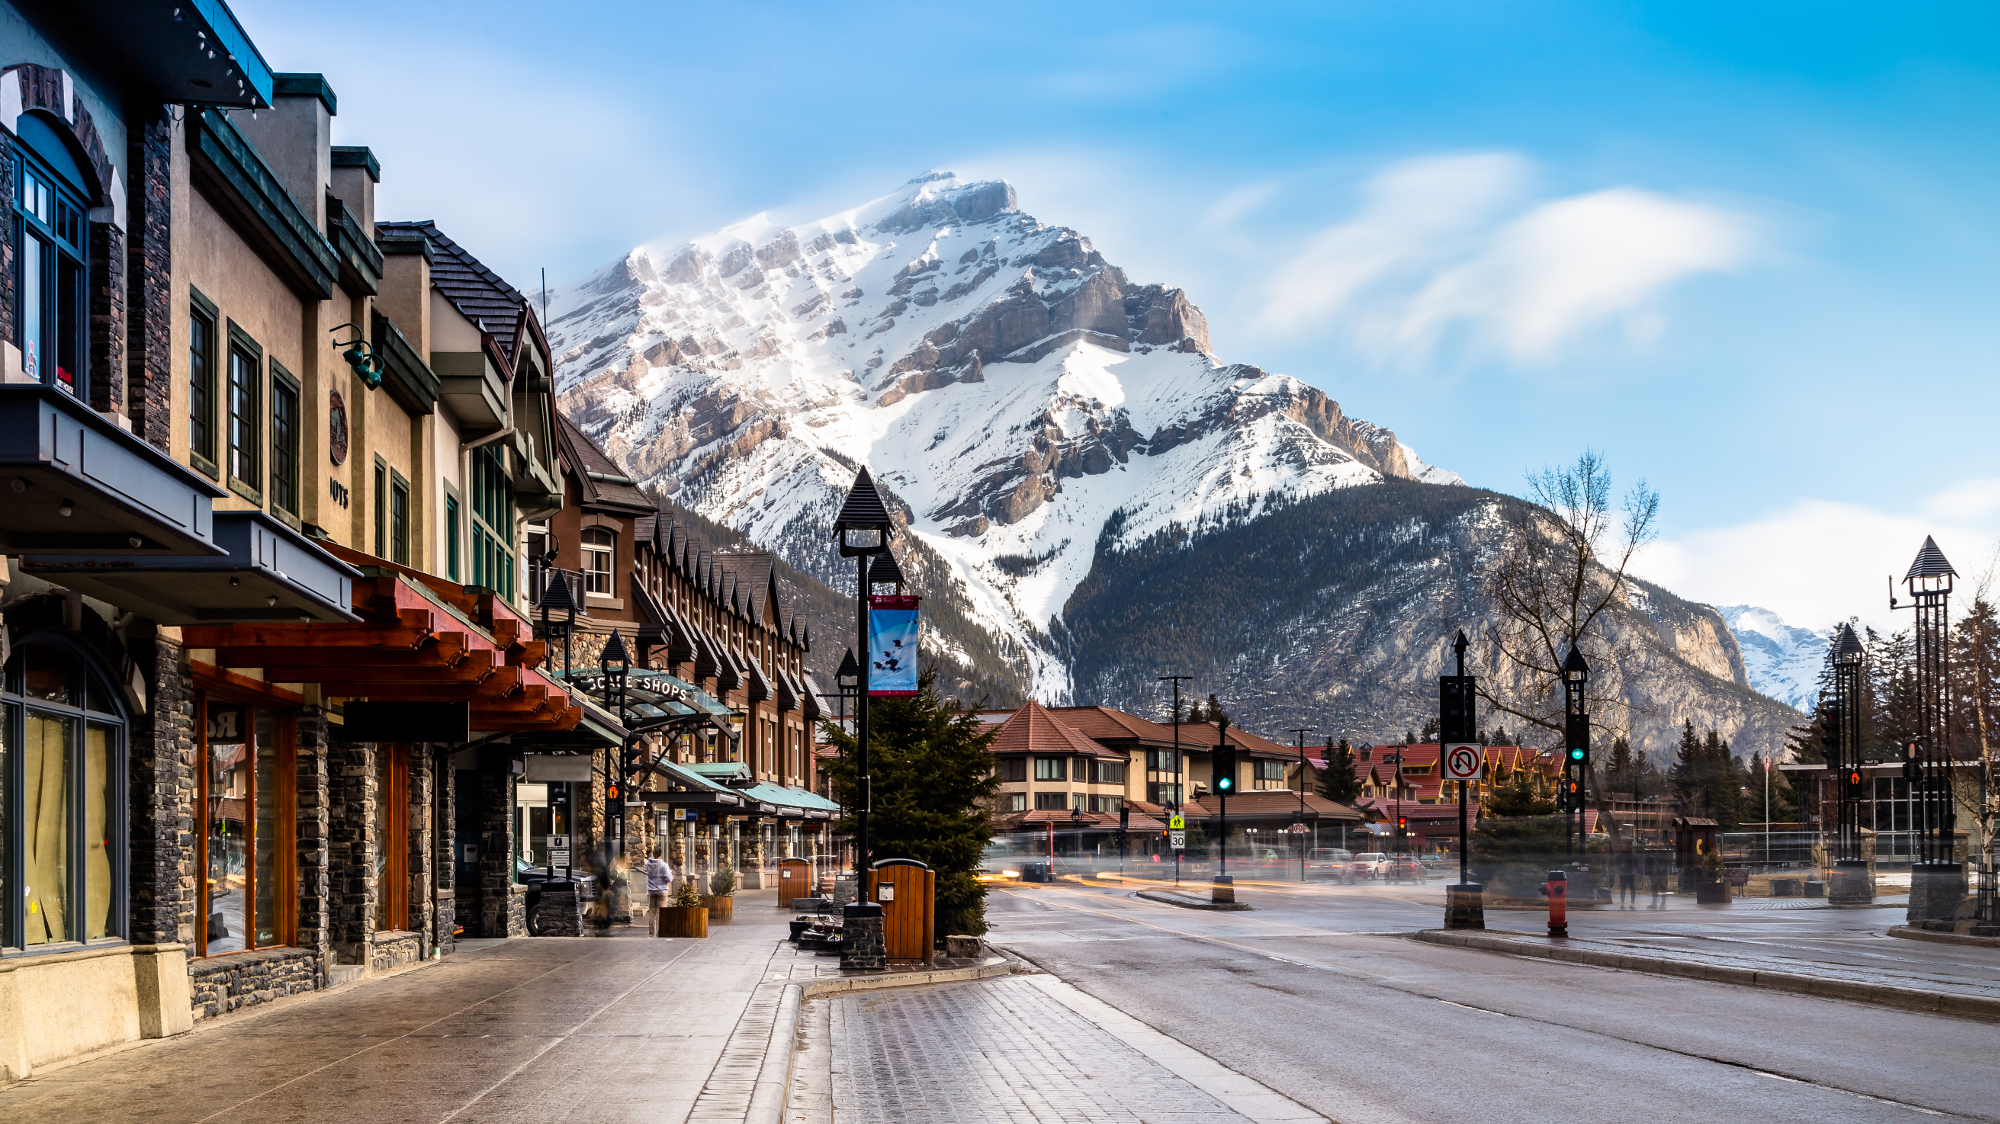 2020 Annual Session of the Alberta Society of Orthodontists